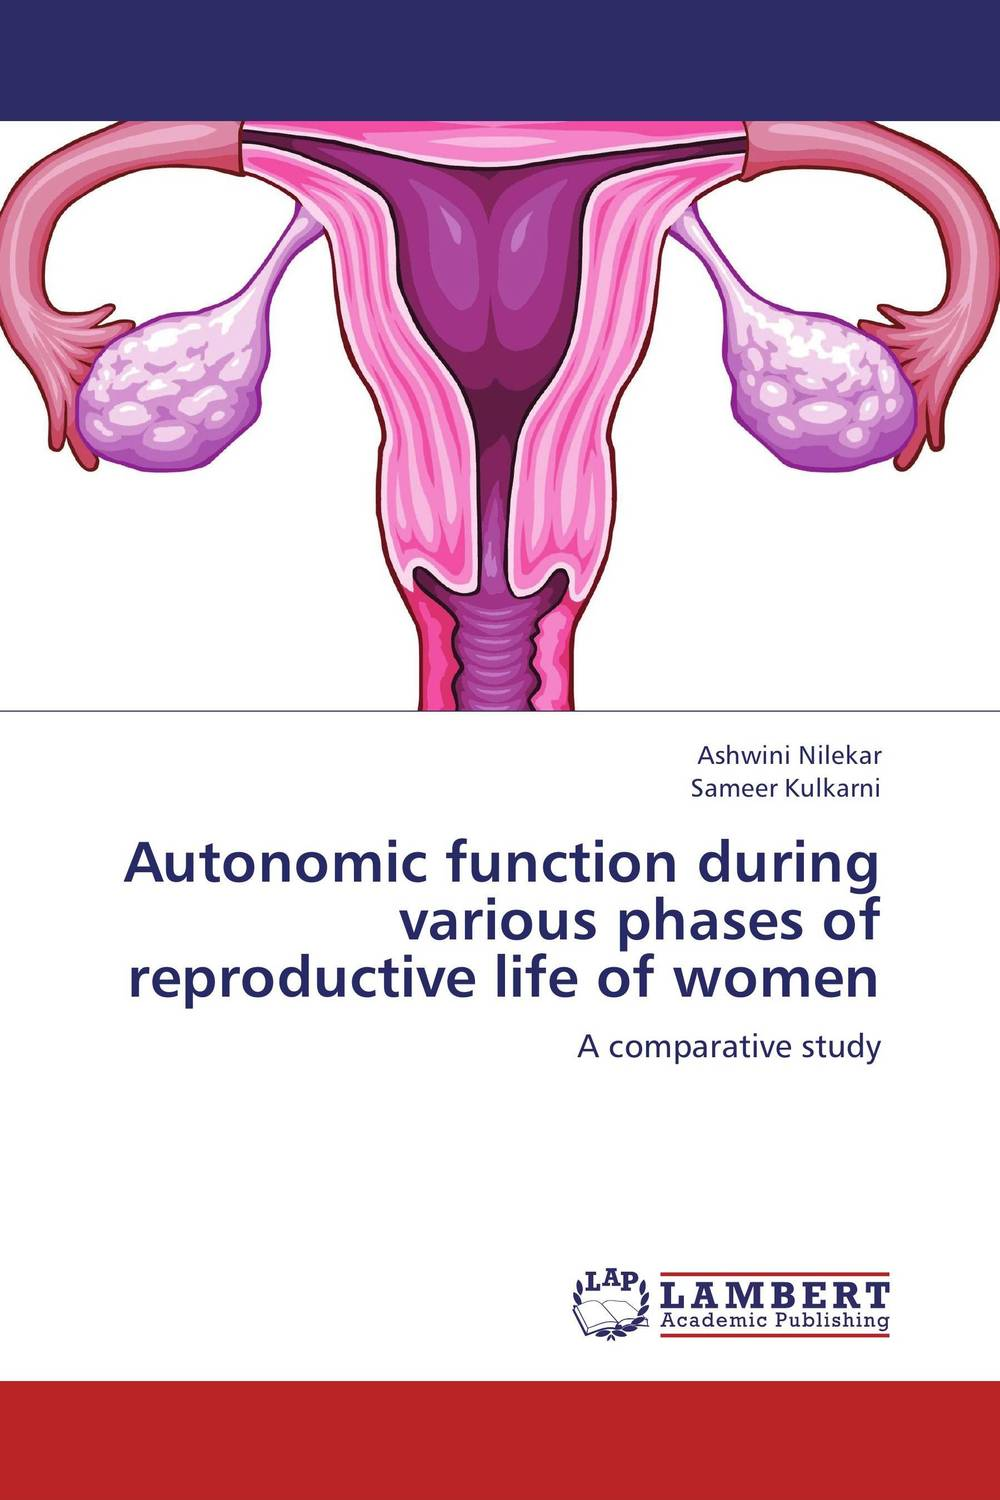 Autonomic function during various phases of reproductive life of women phases for life lp